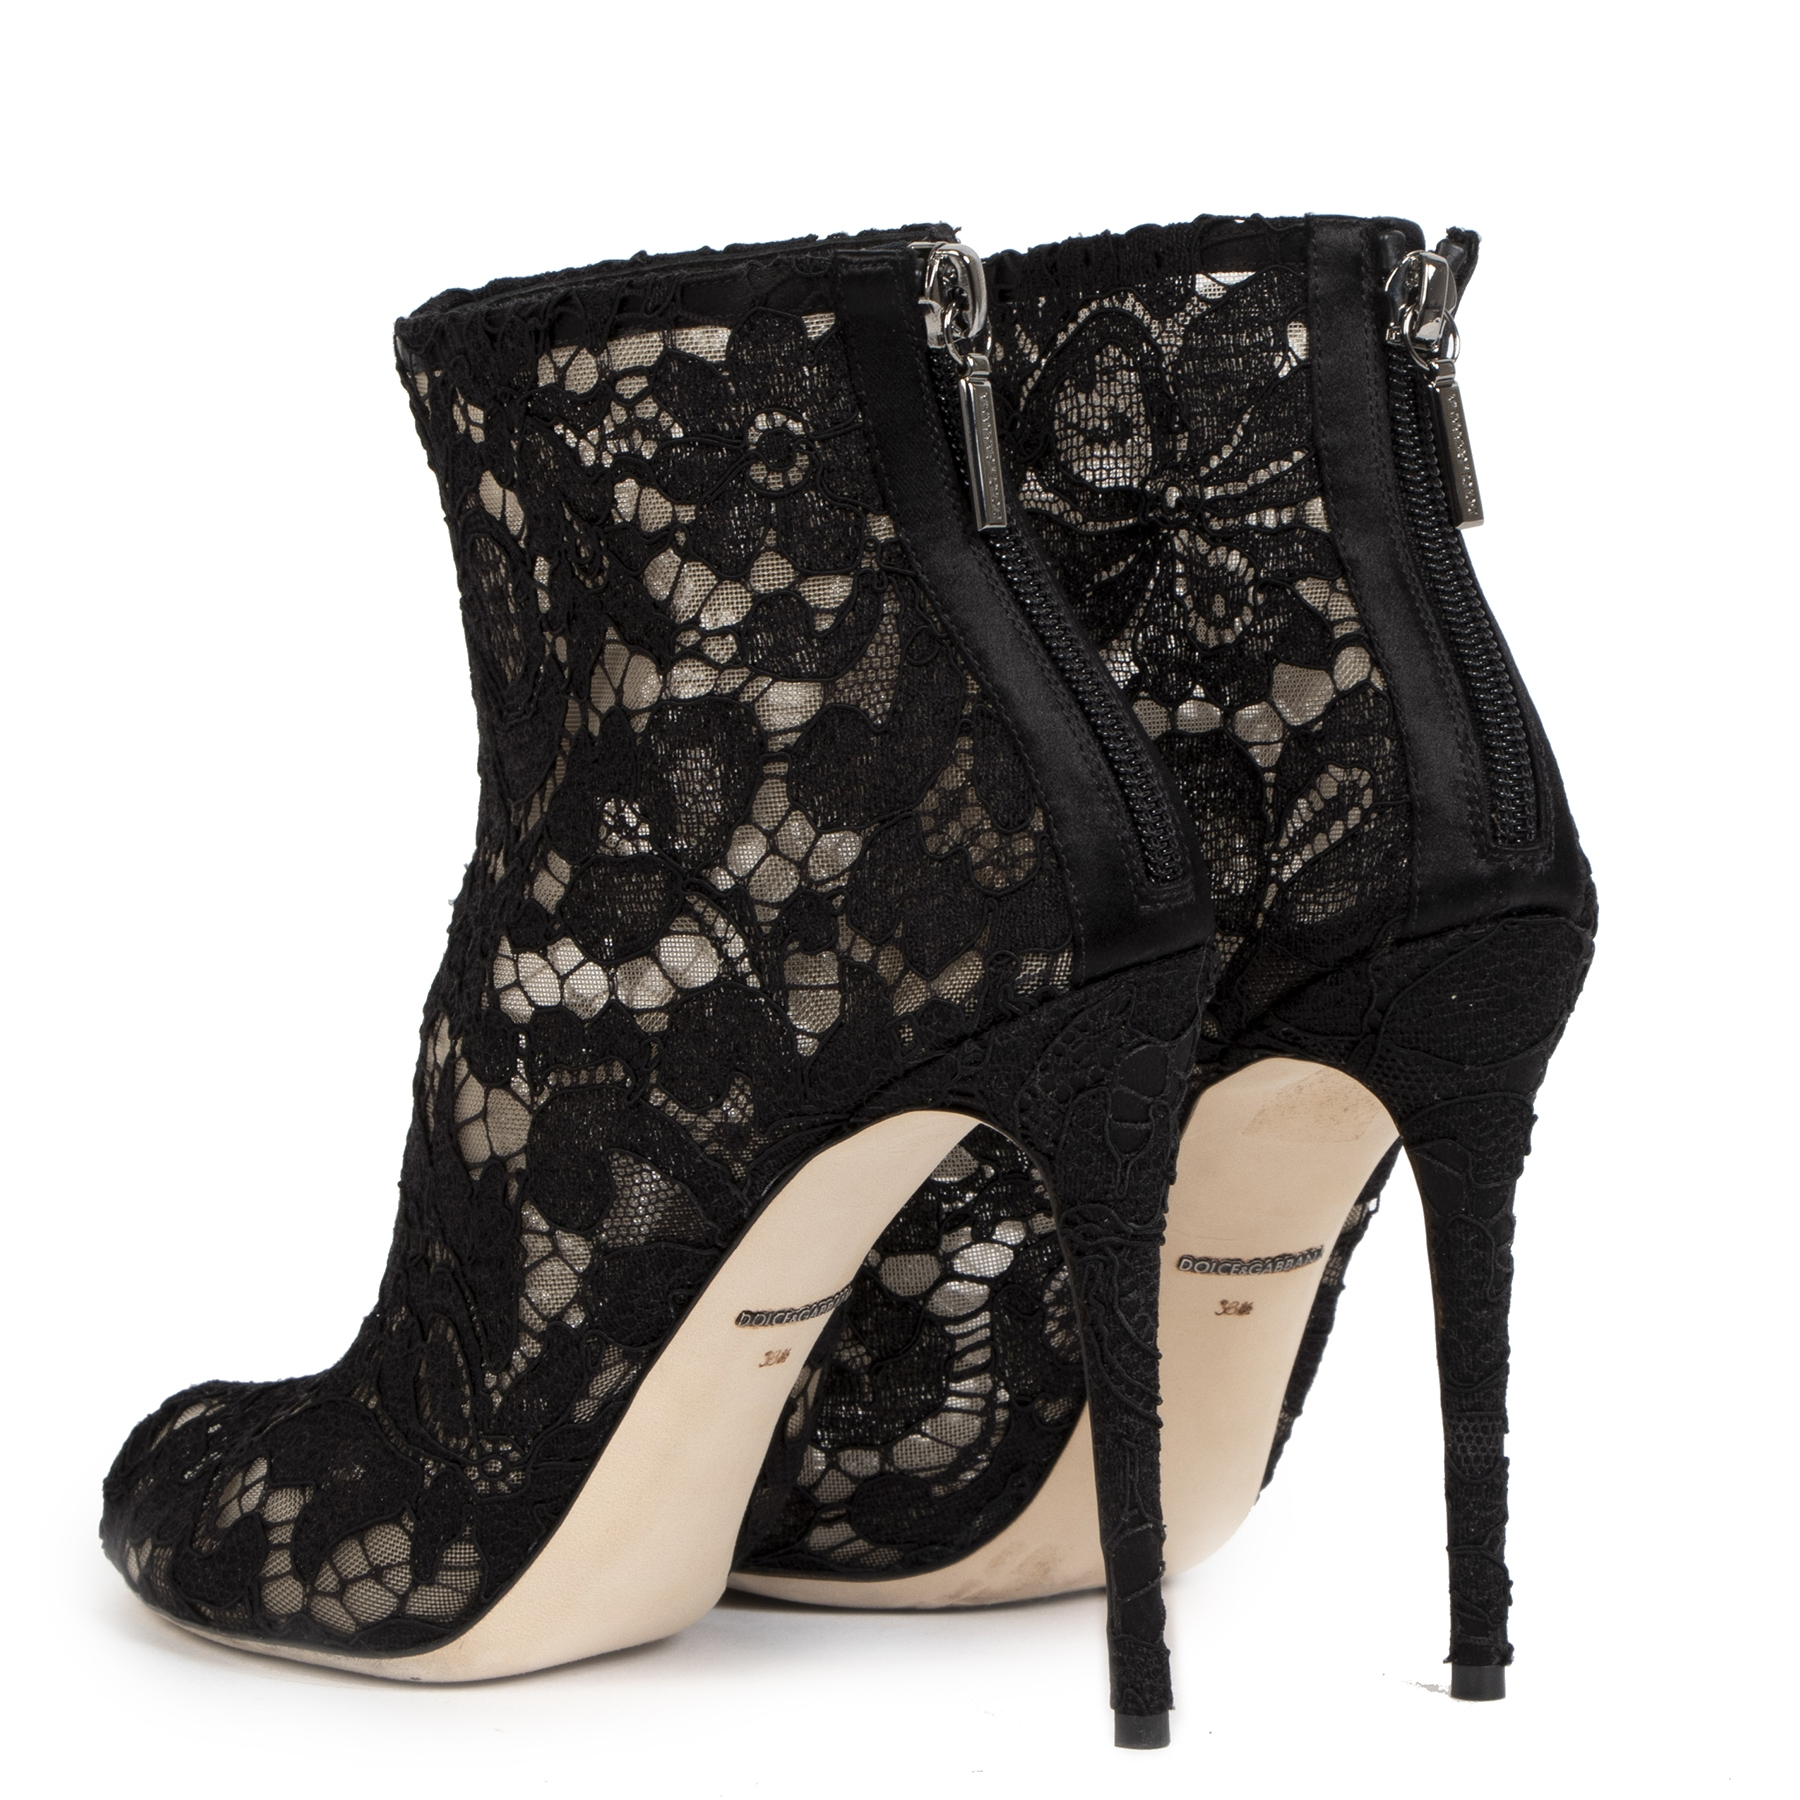 Dolce & Gabbana Lace Mesh Peep-Toe Ankle Boots - size 38 1/2 (